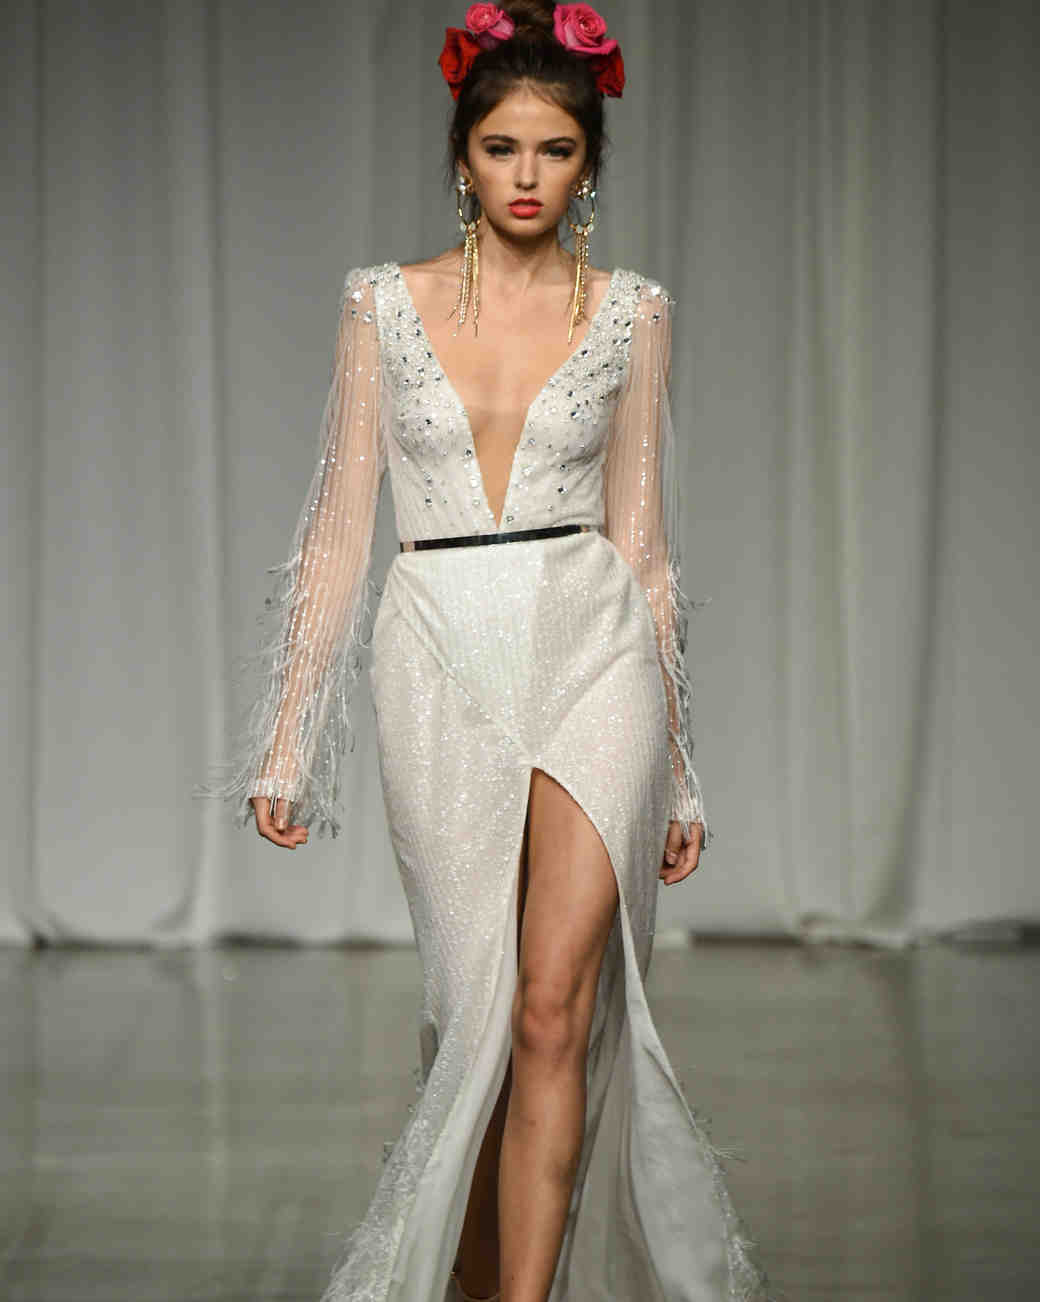 julie vino group fall 2019 high slit v-neck fringe wedding dress